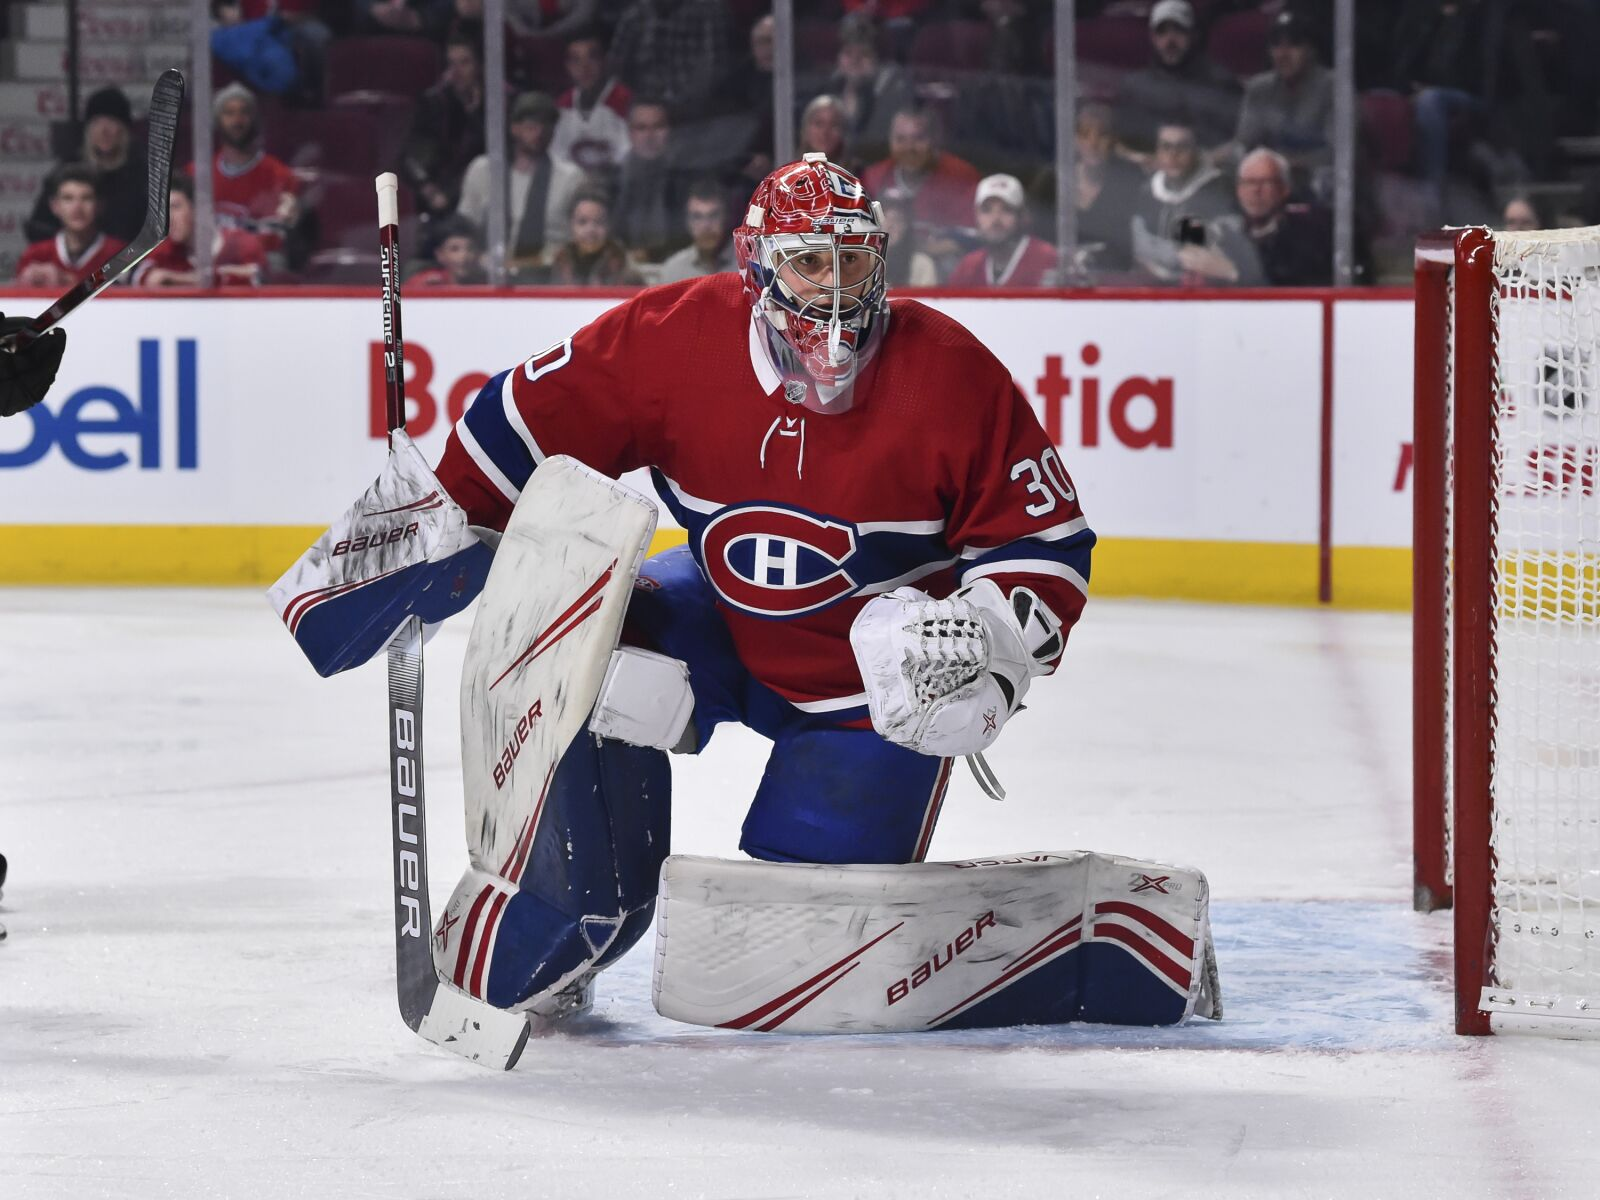 Montreal Canadiens: Cayden Primeau Sent Down, But Could Still Be Habs Number Two Goalie